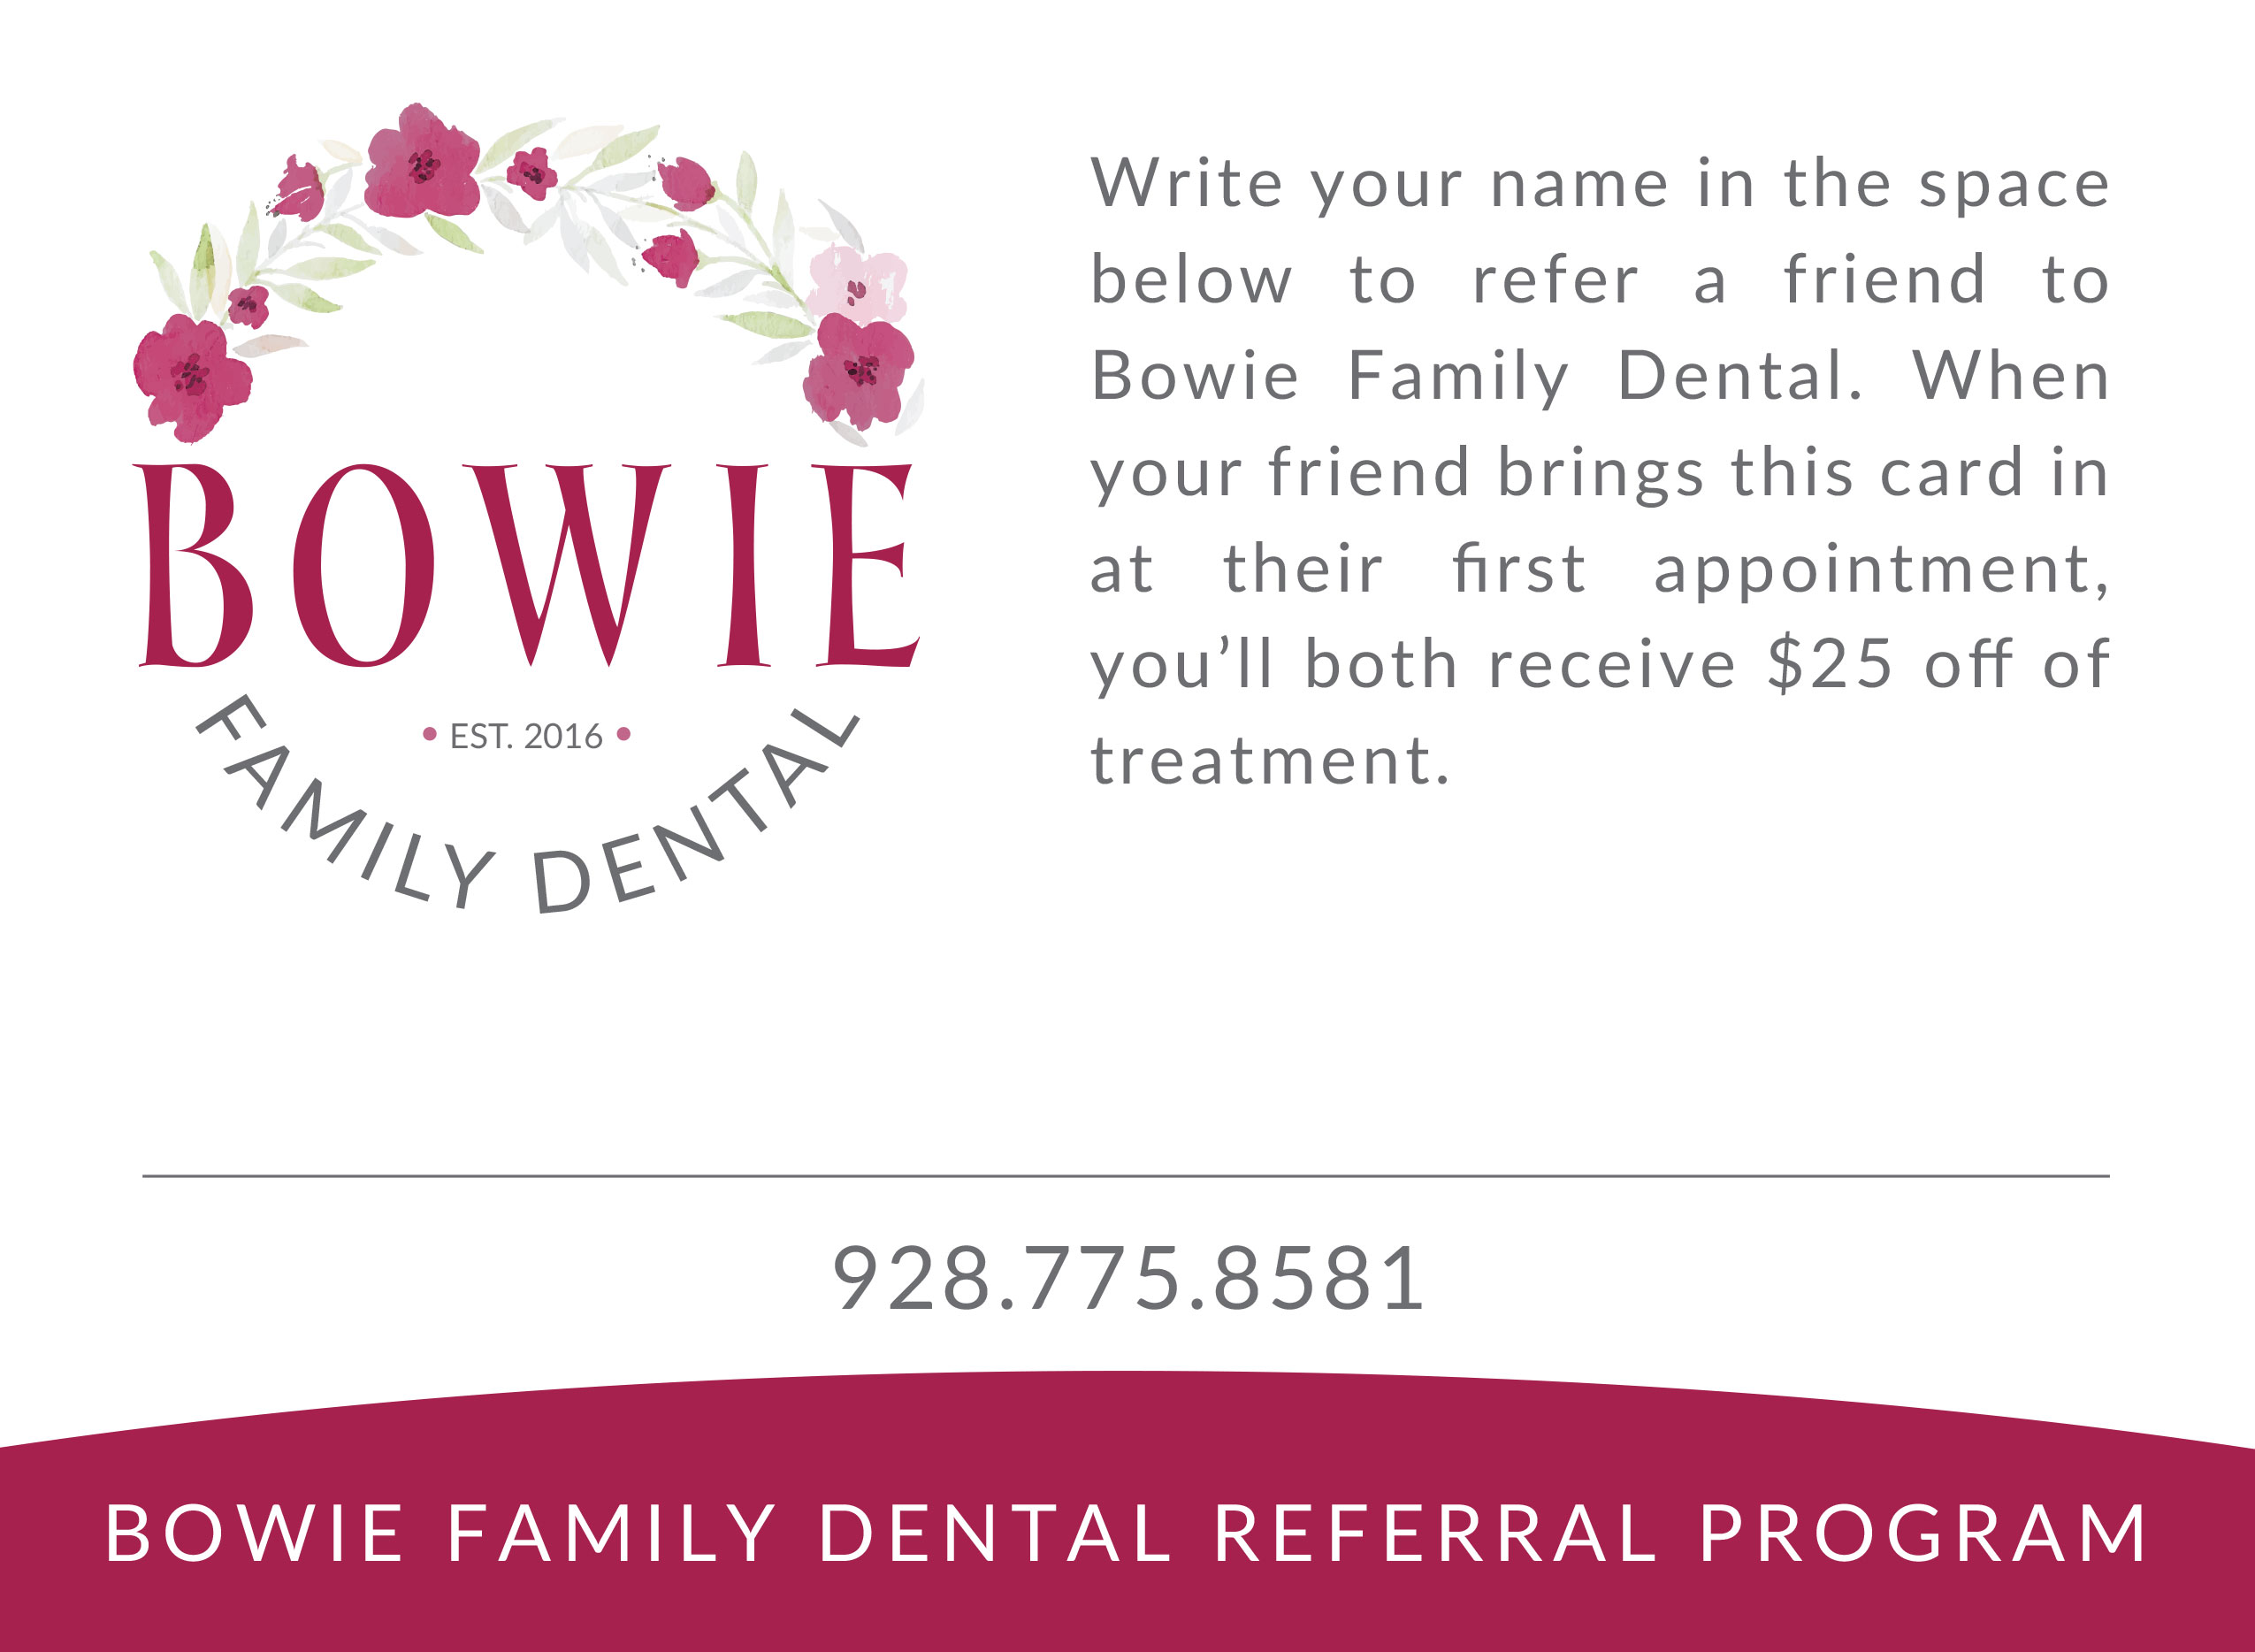 Bowie Family Dental Referral Program